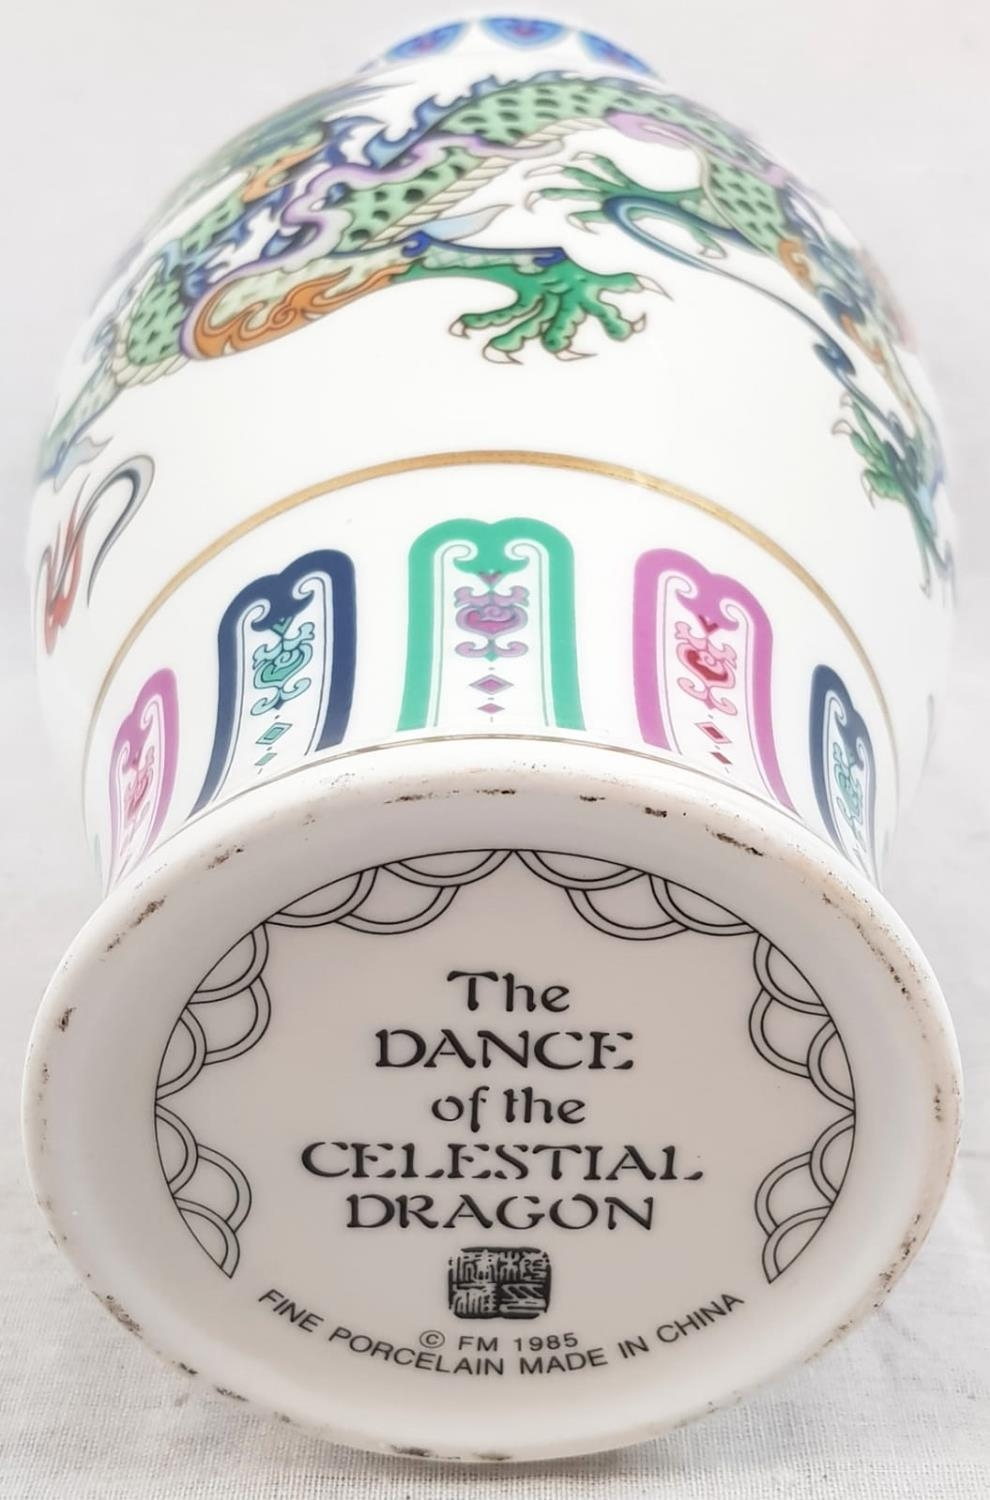 Chinese Porcelain Dragon Vase - The Dance of the Celestial Dragon. 27cm tall - Image 5 of 5